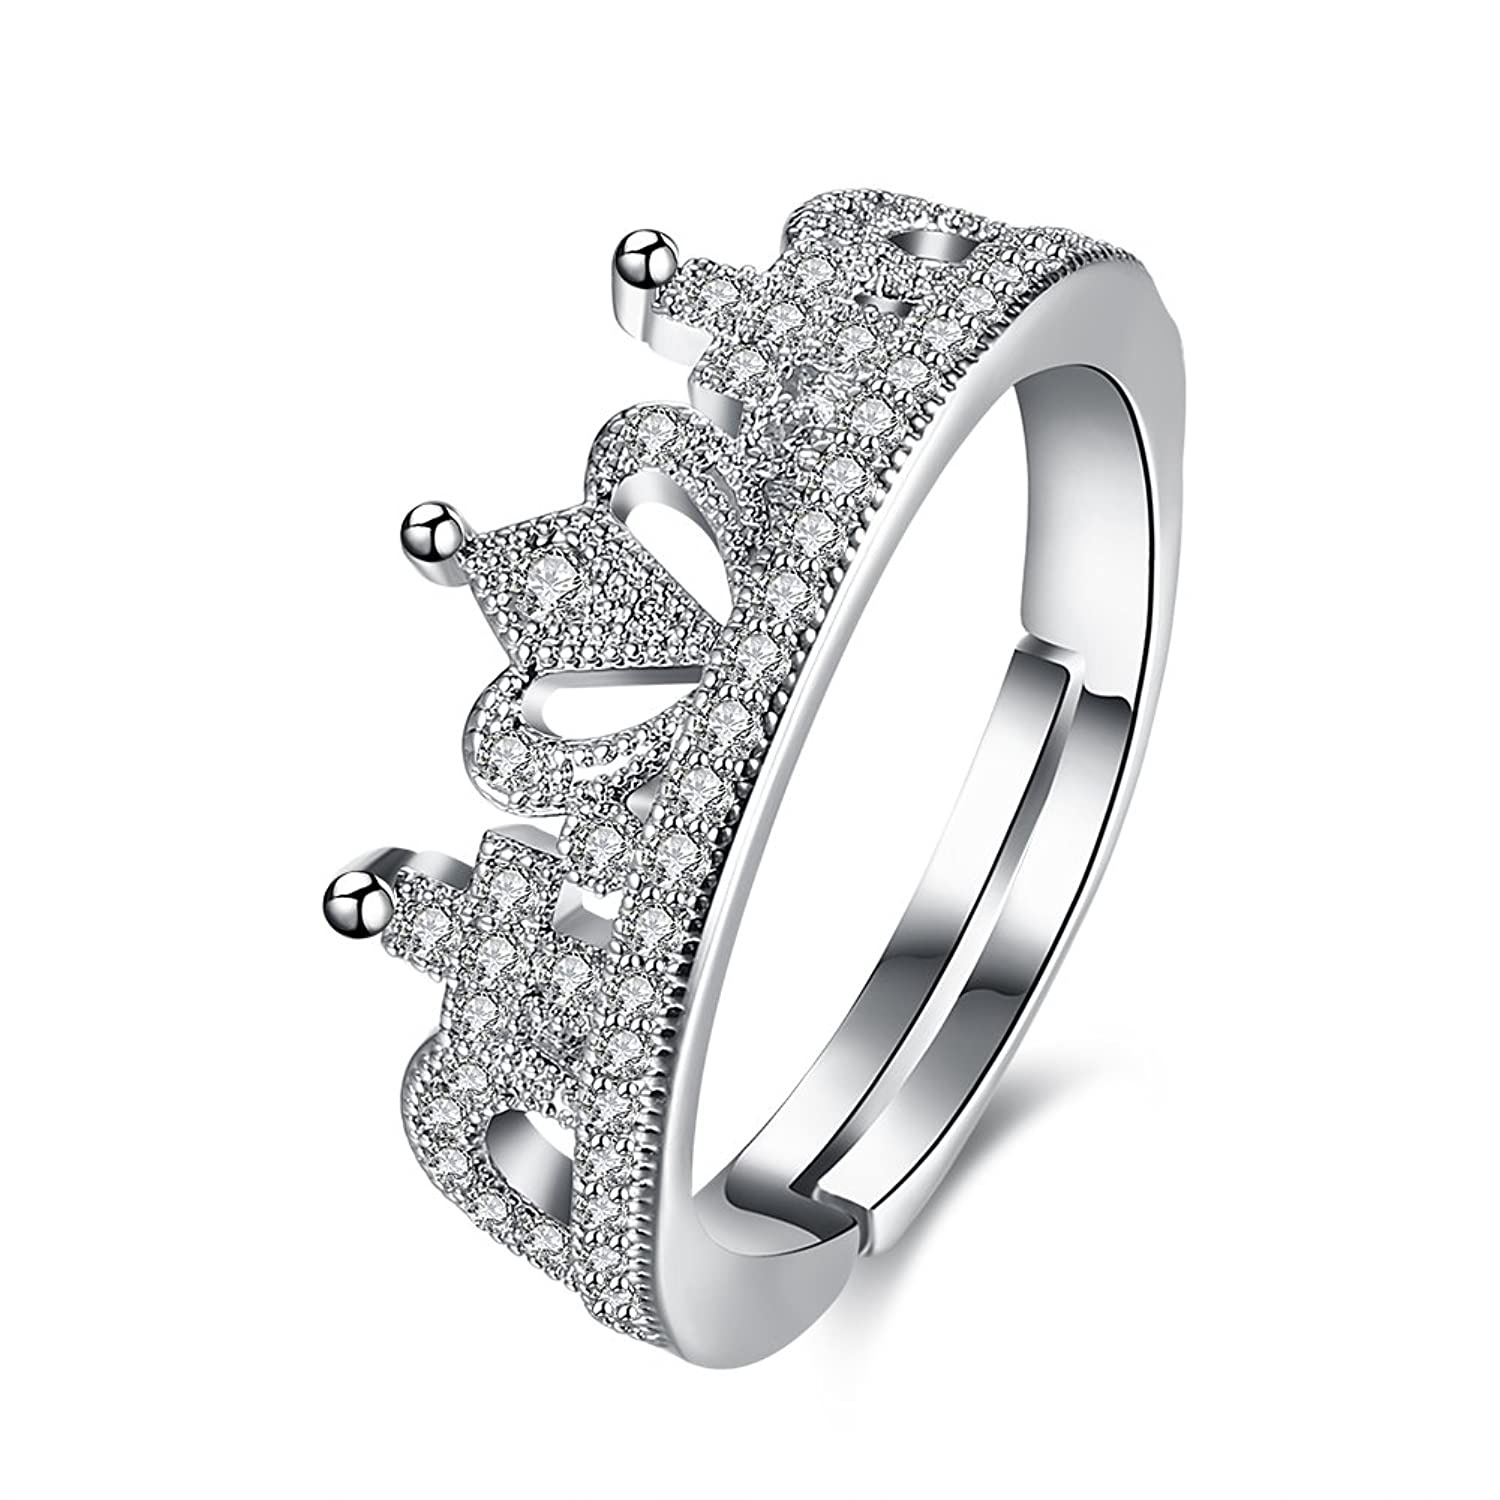 diamonds ring platinum rings eternity in designer products pt india half jl with diamond jewelove